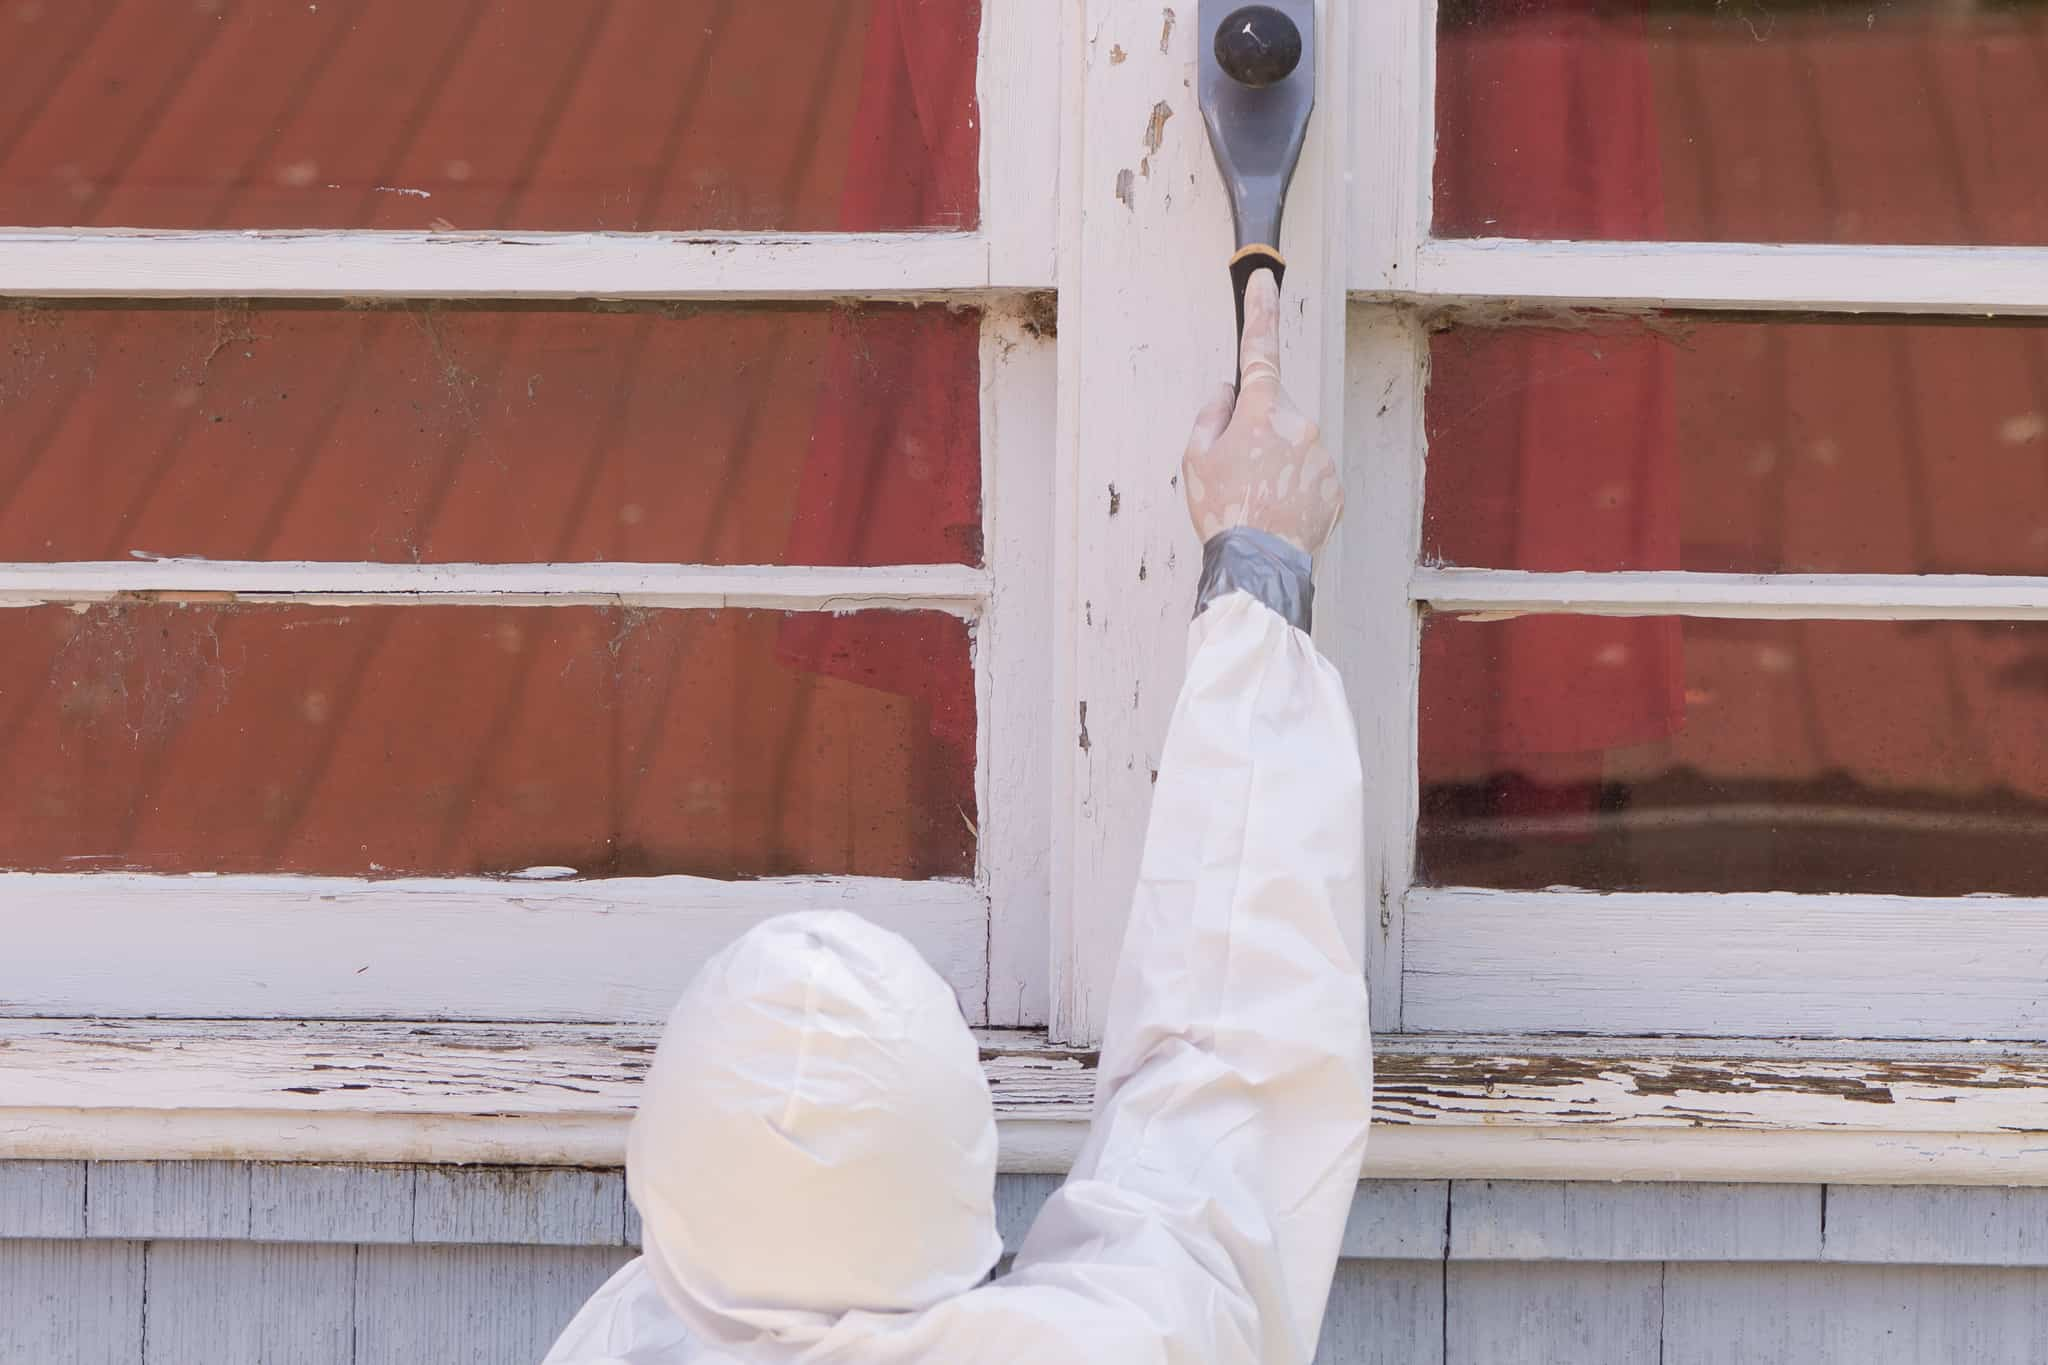 Powers Environmental will remove lead paint safely